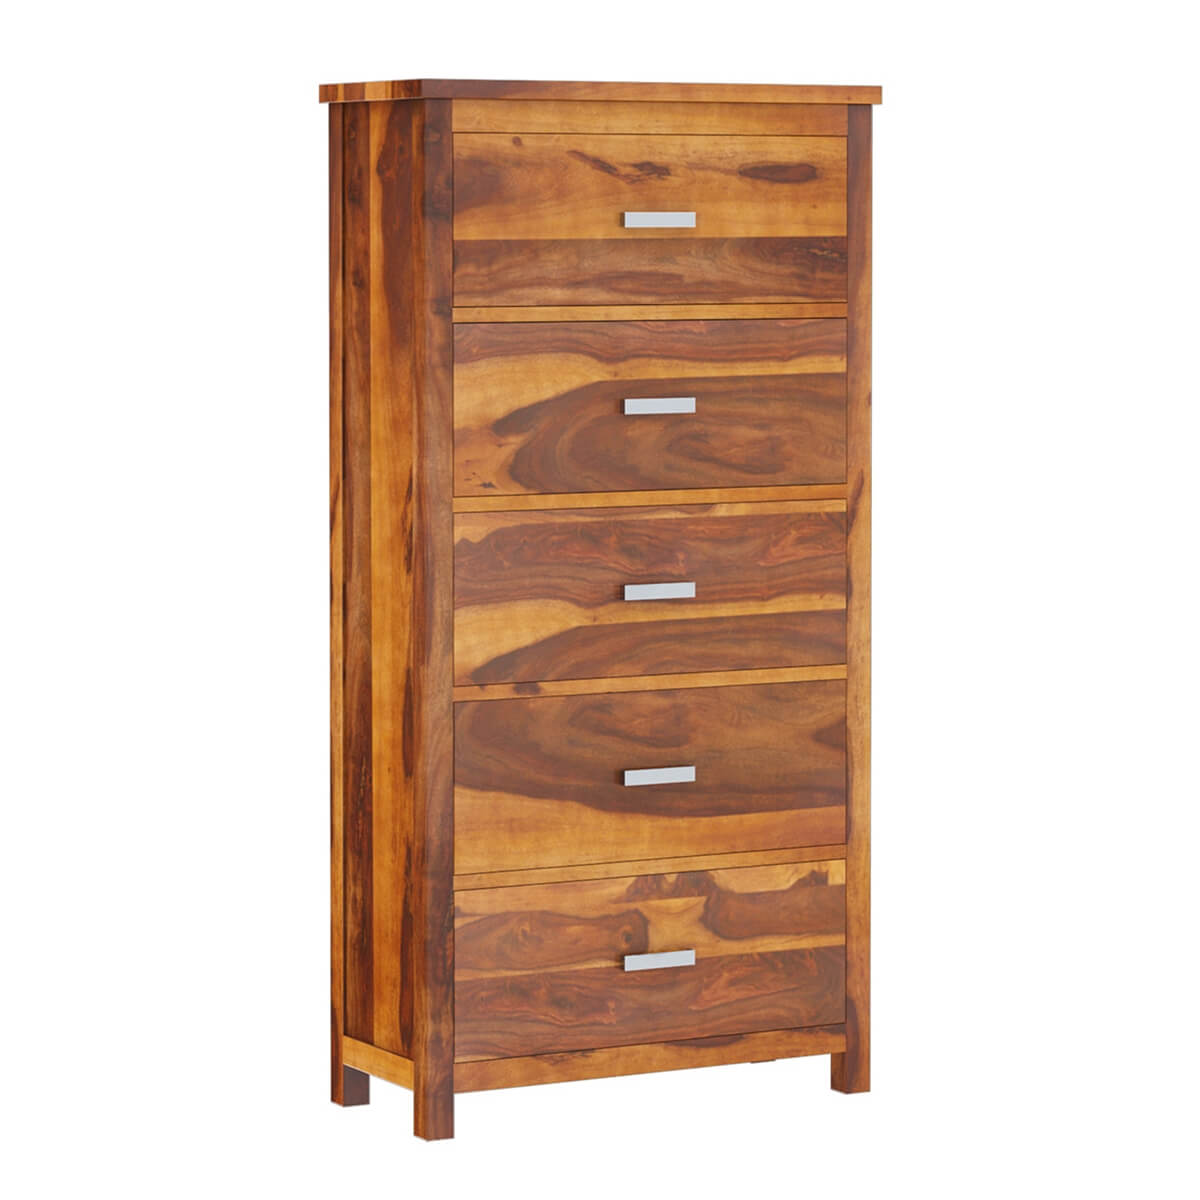 Flagstaff handcrafted solid wood drawer bedroom chest